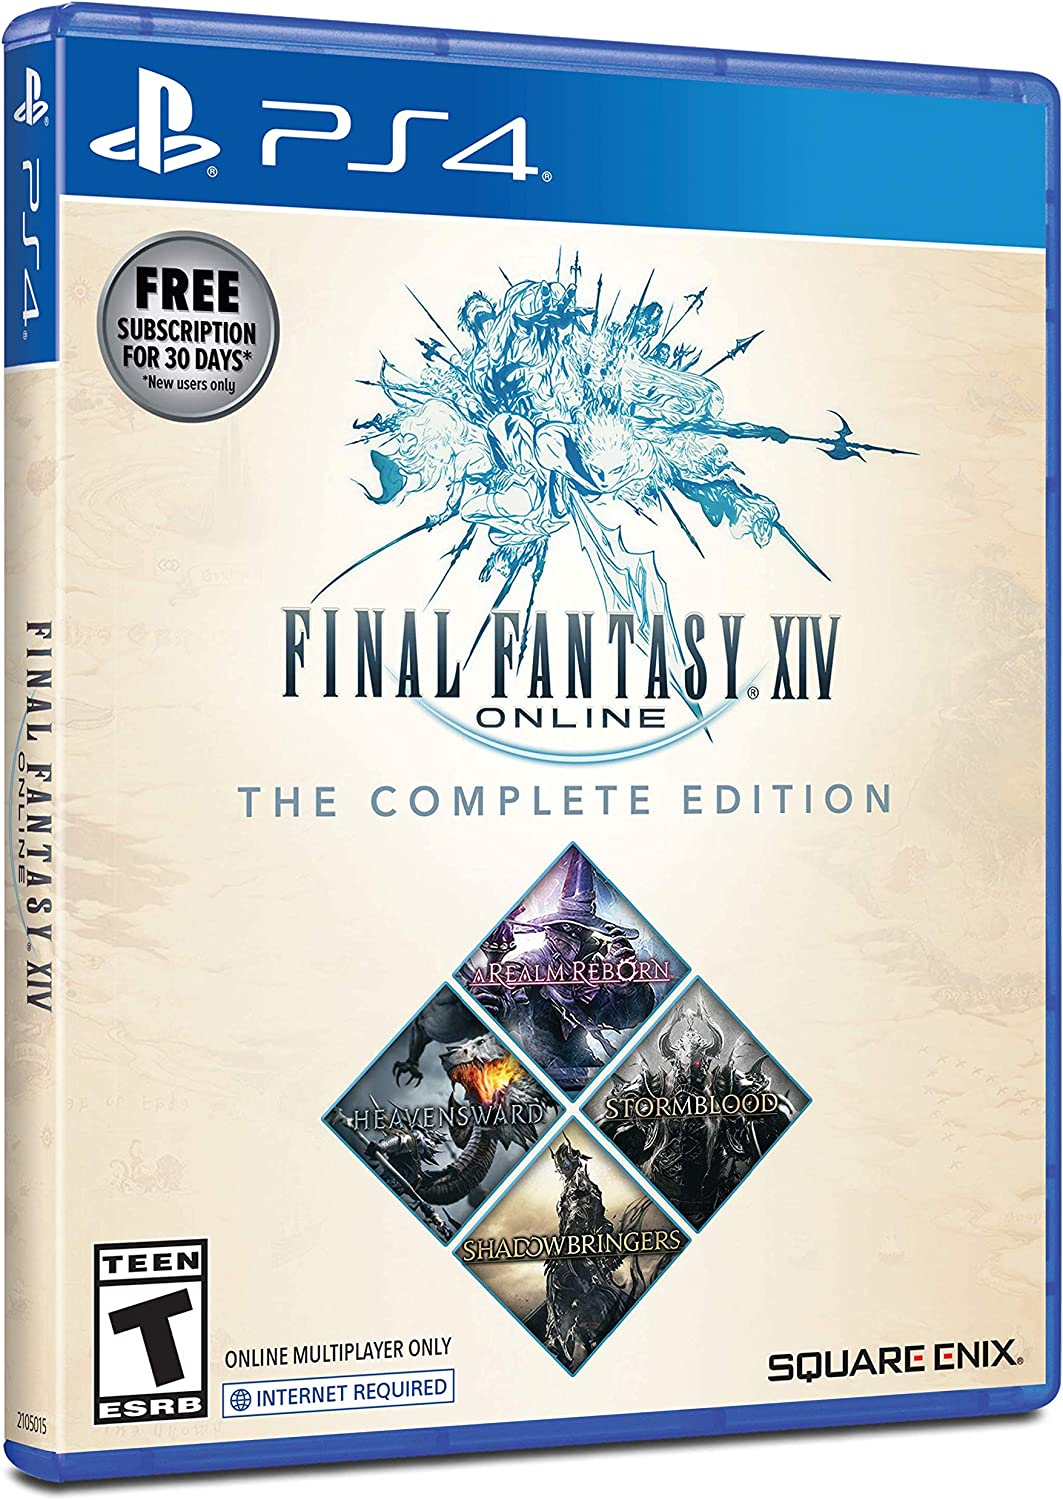 Amazon com: Final Fantasy XIV Online: Complete Edition - PlayStation